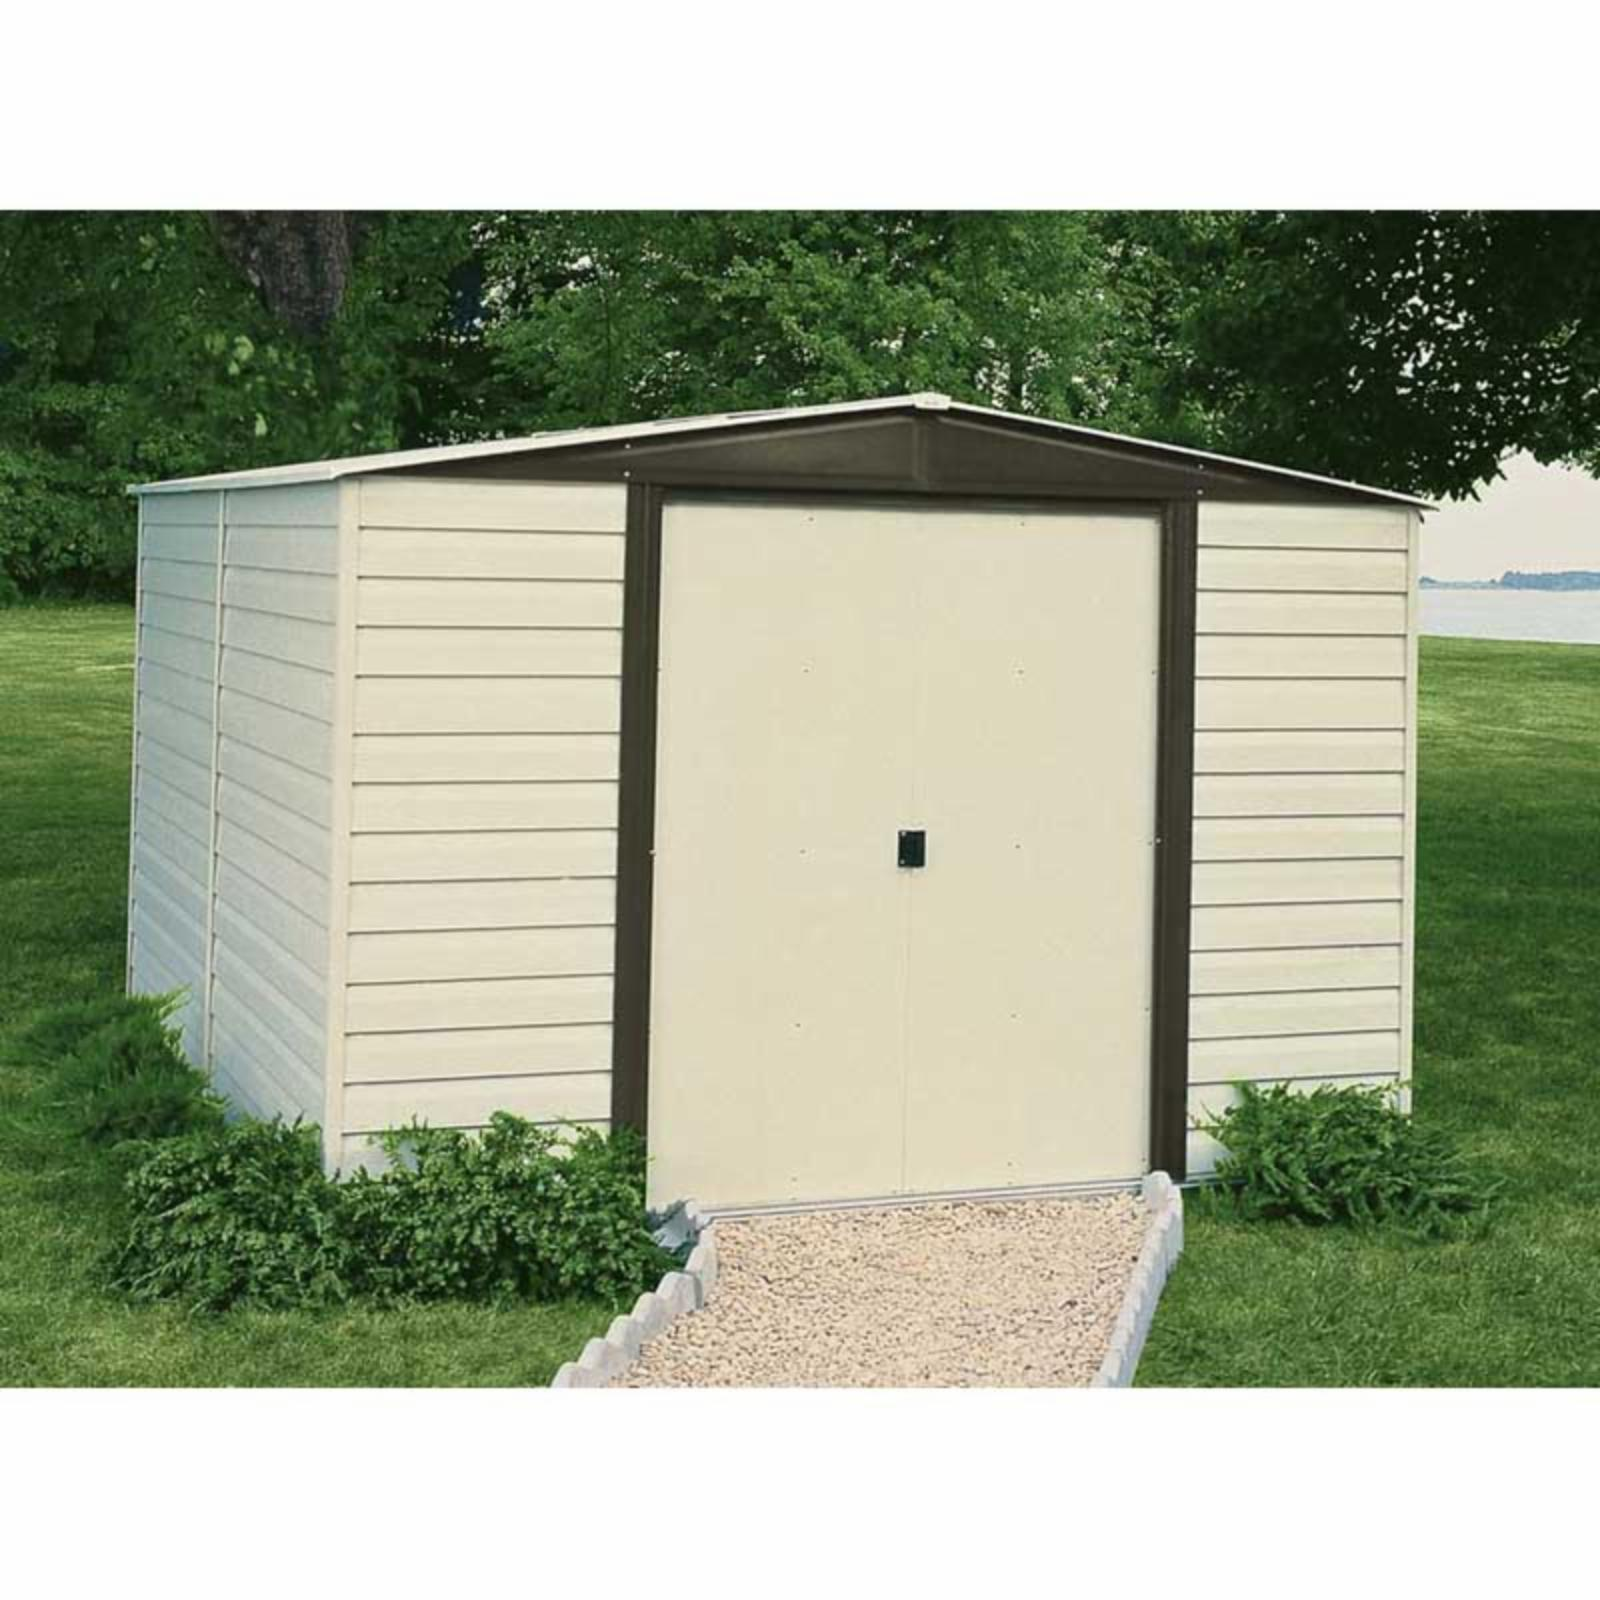 Arrow Shed Vinyl Dallas 10 x 8 ft. Shed - VD108